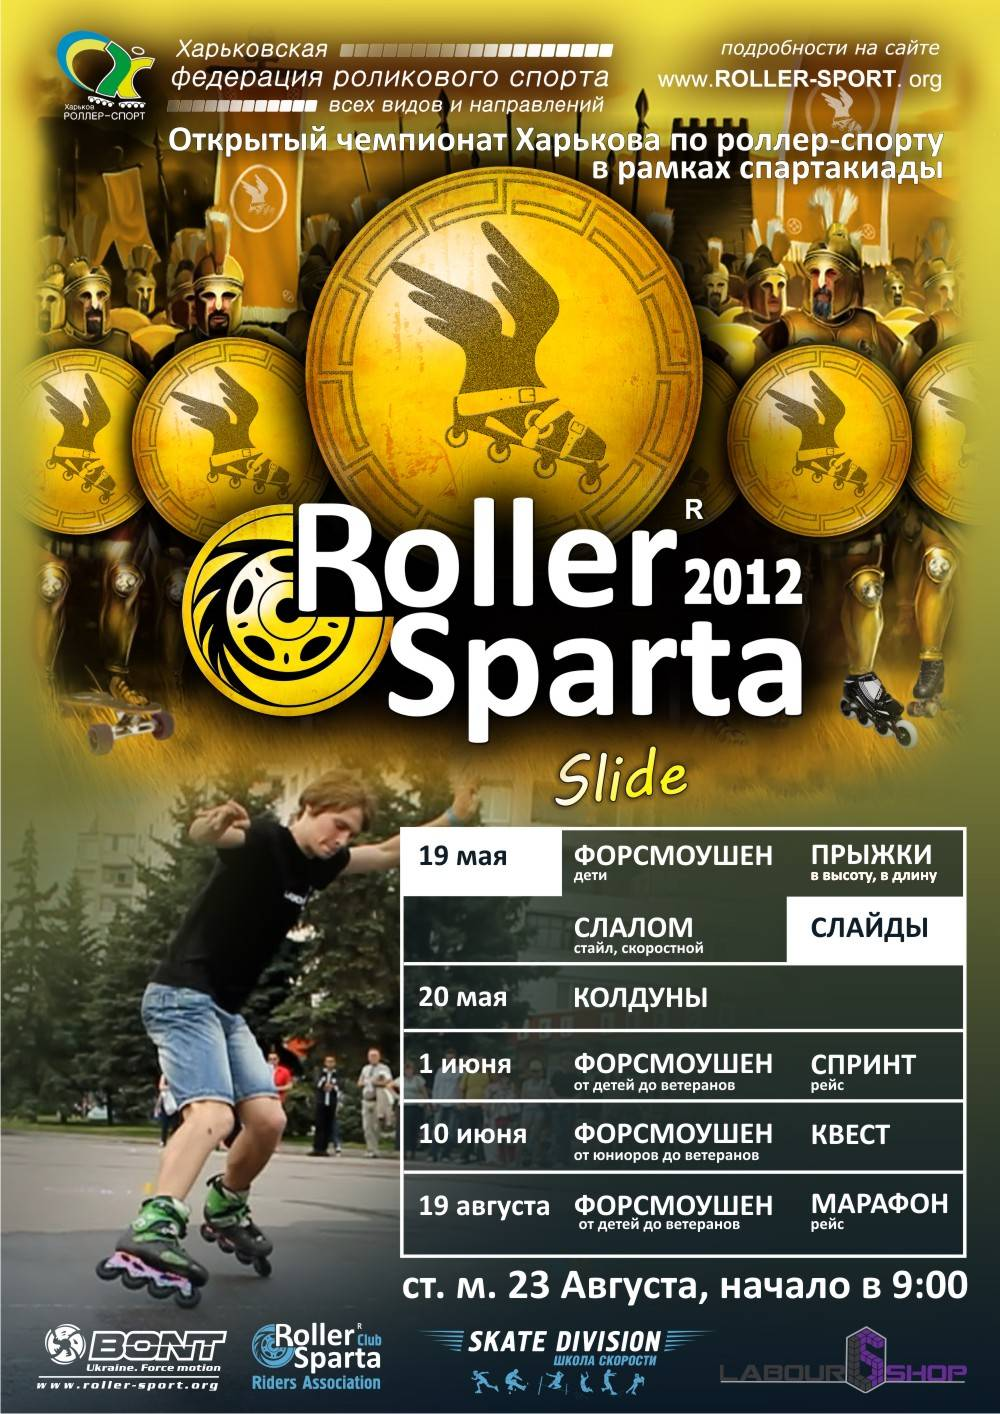 Roller Sparta 2012 Force motion Slalom Jump Slide Wizards